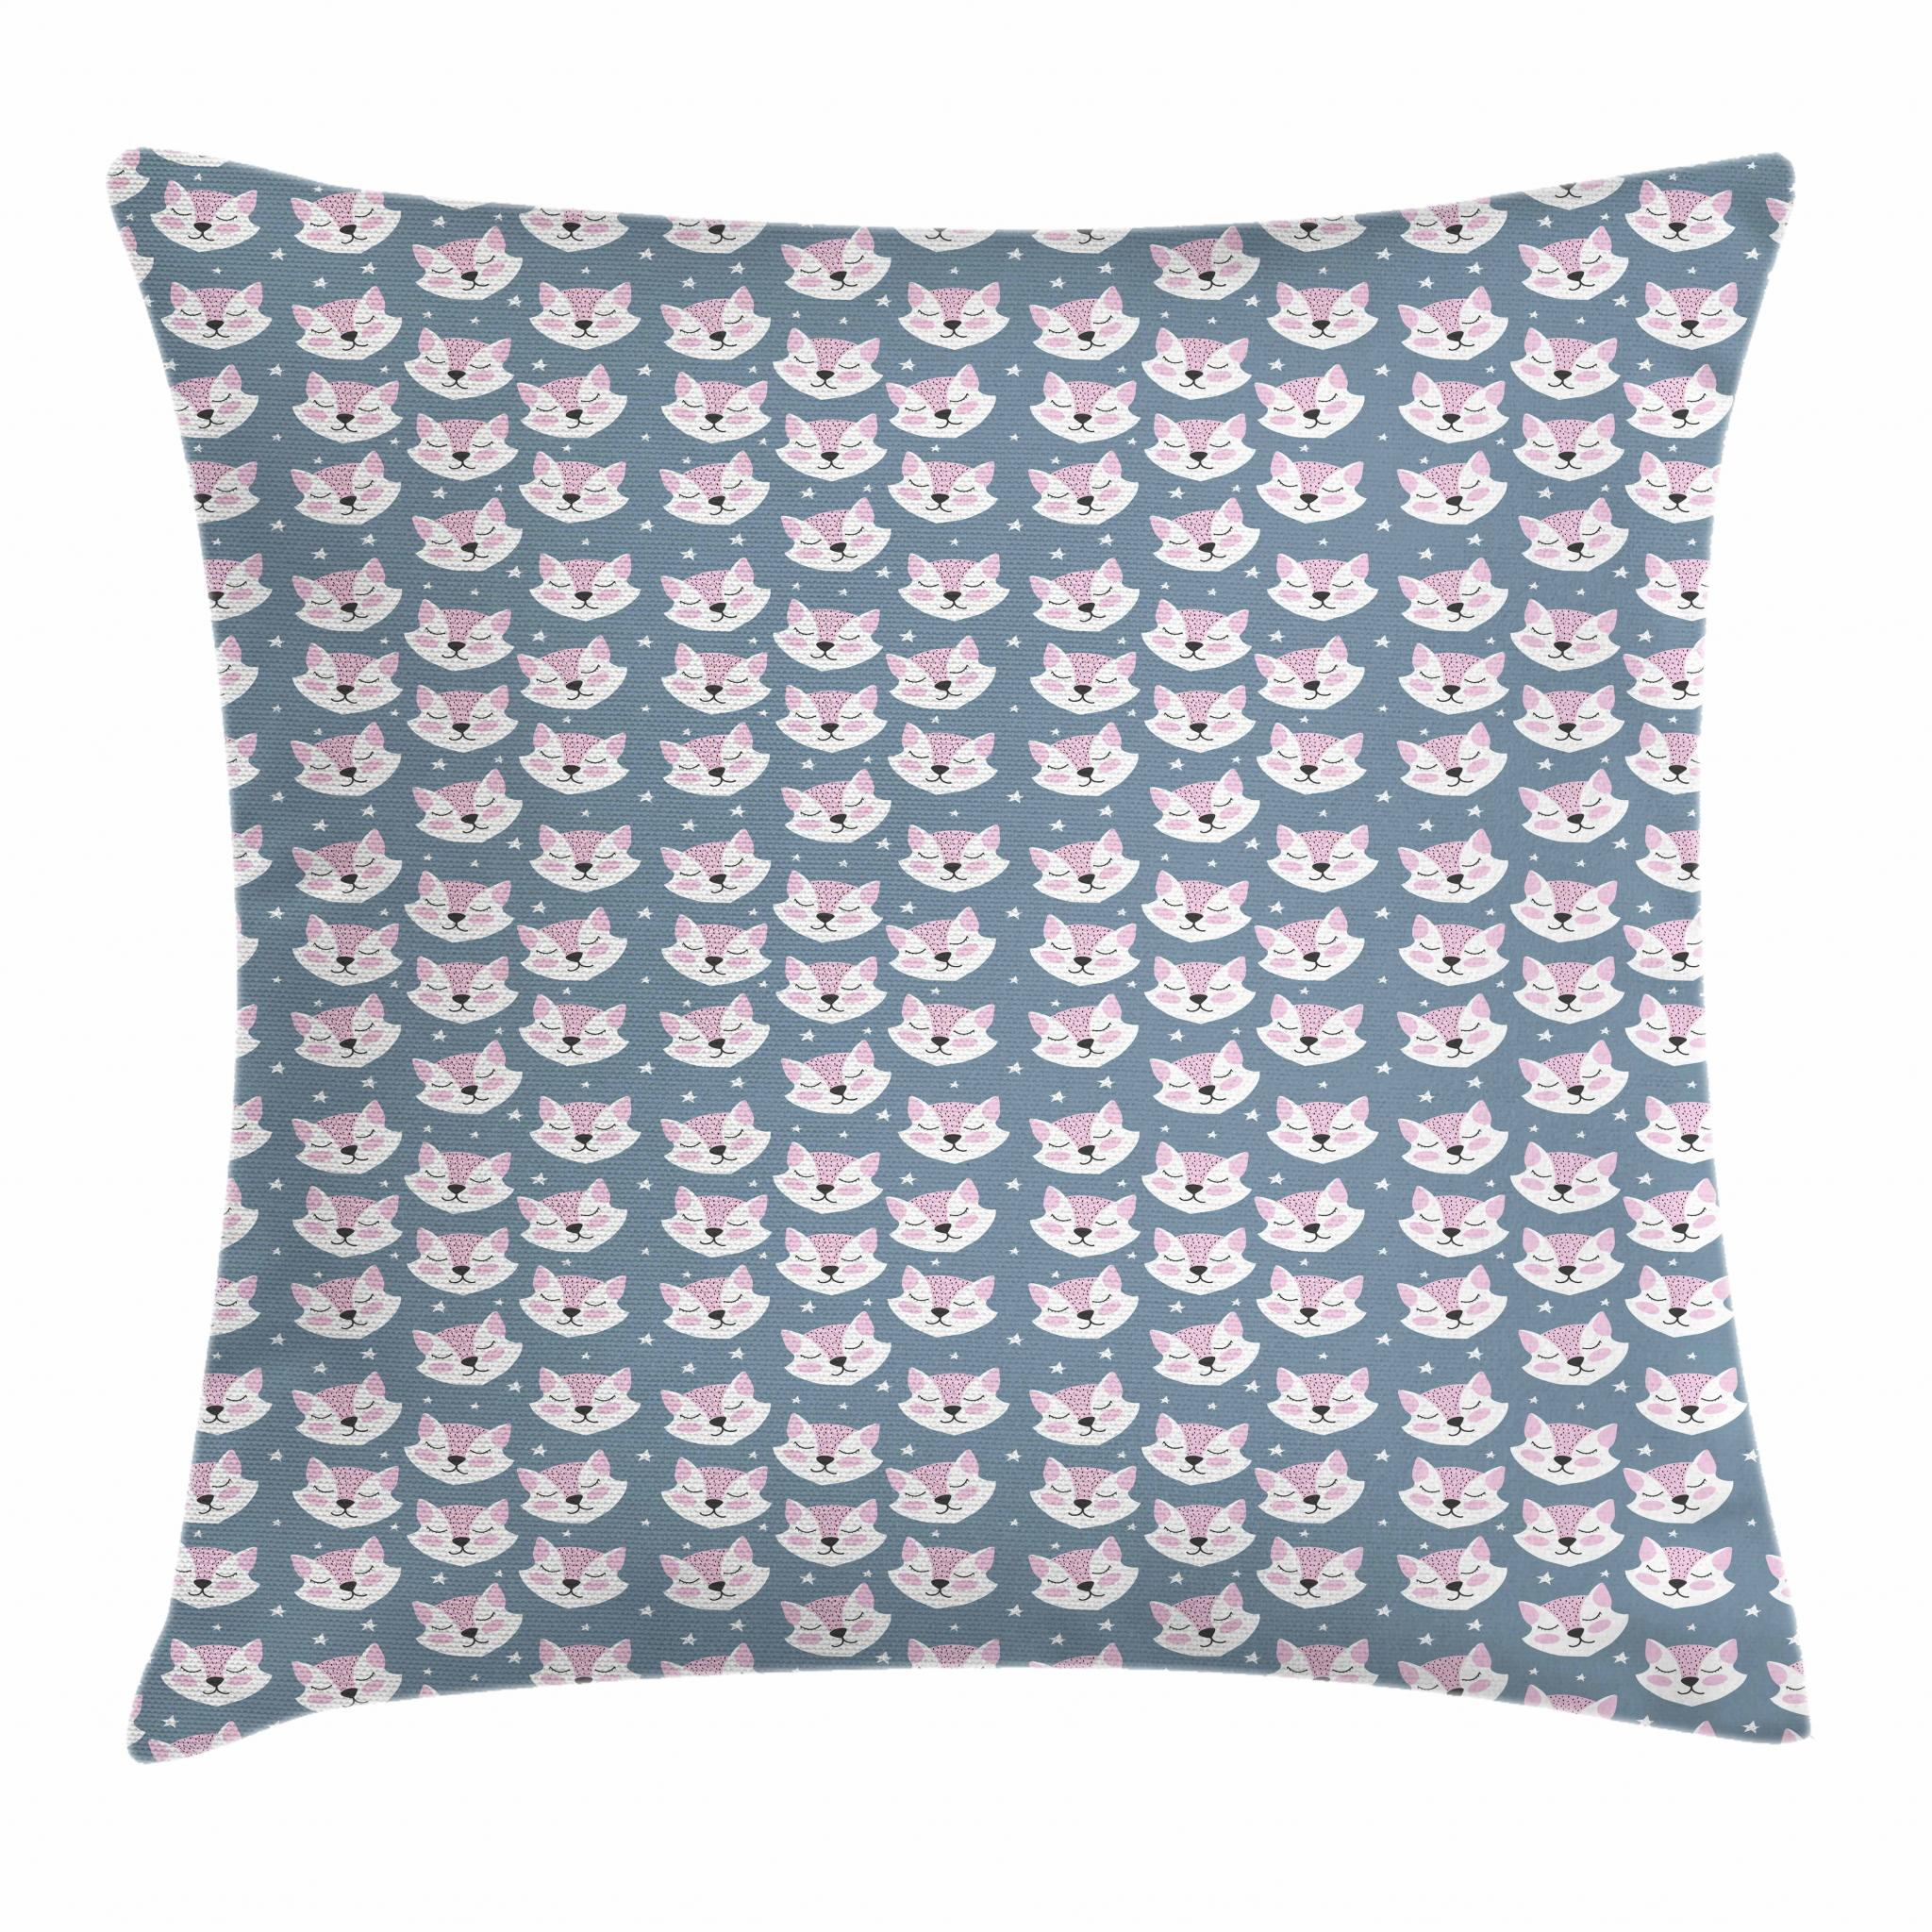 Kids Throw Pillow Cushion Cover Sleeping Fox Faces with